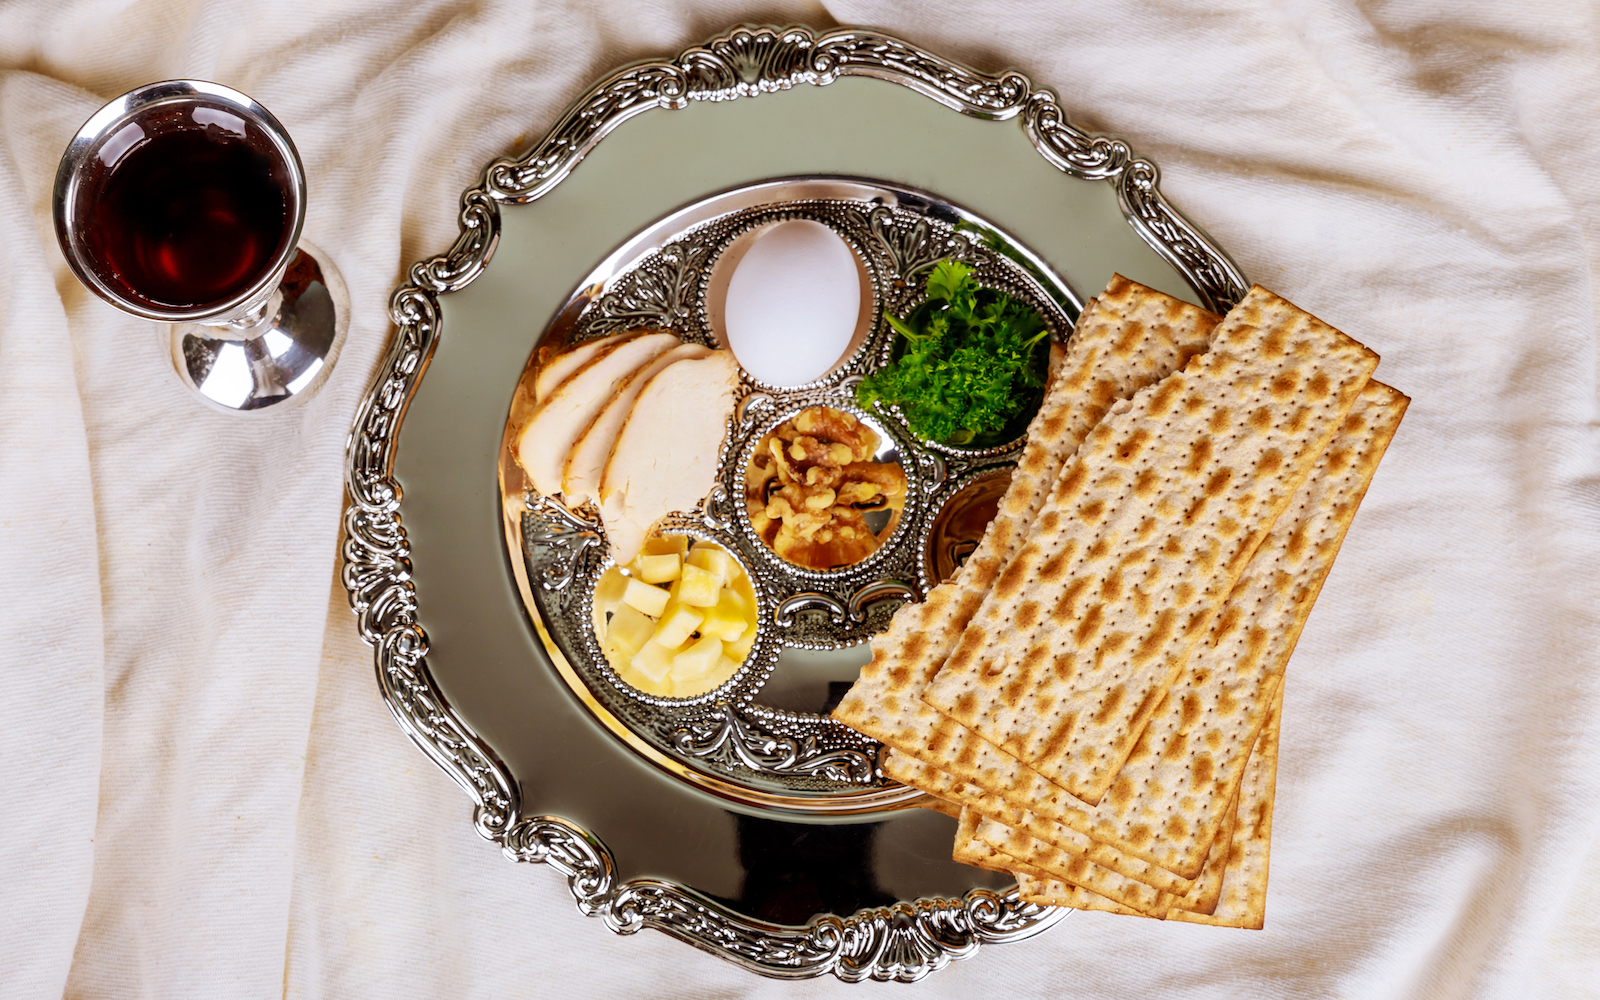 15 Deep Thoughts For A Profound Passover Seder